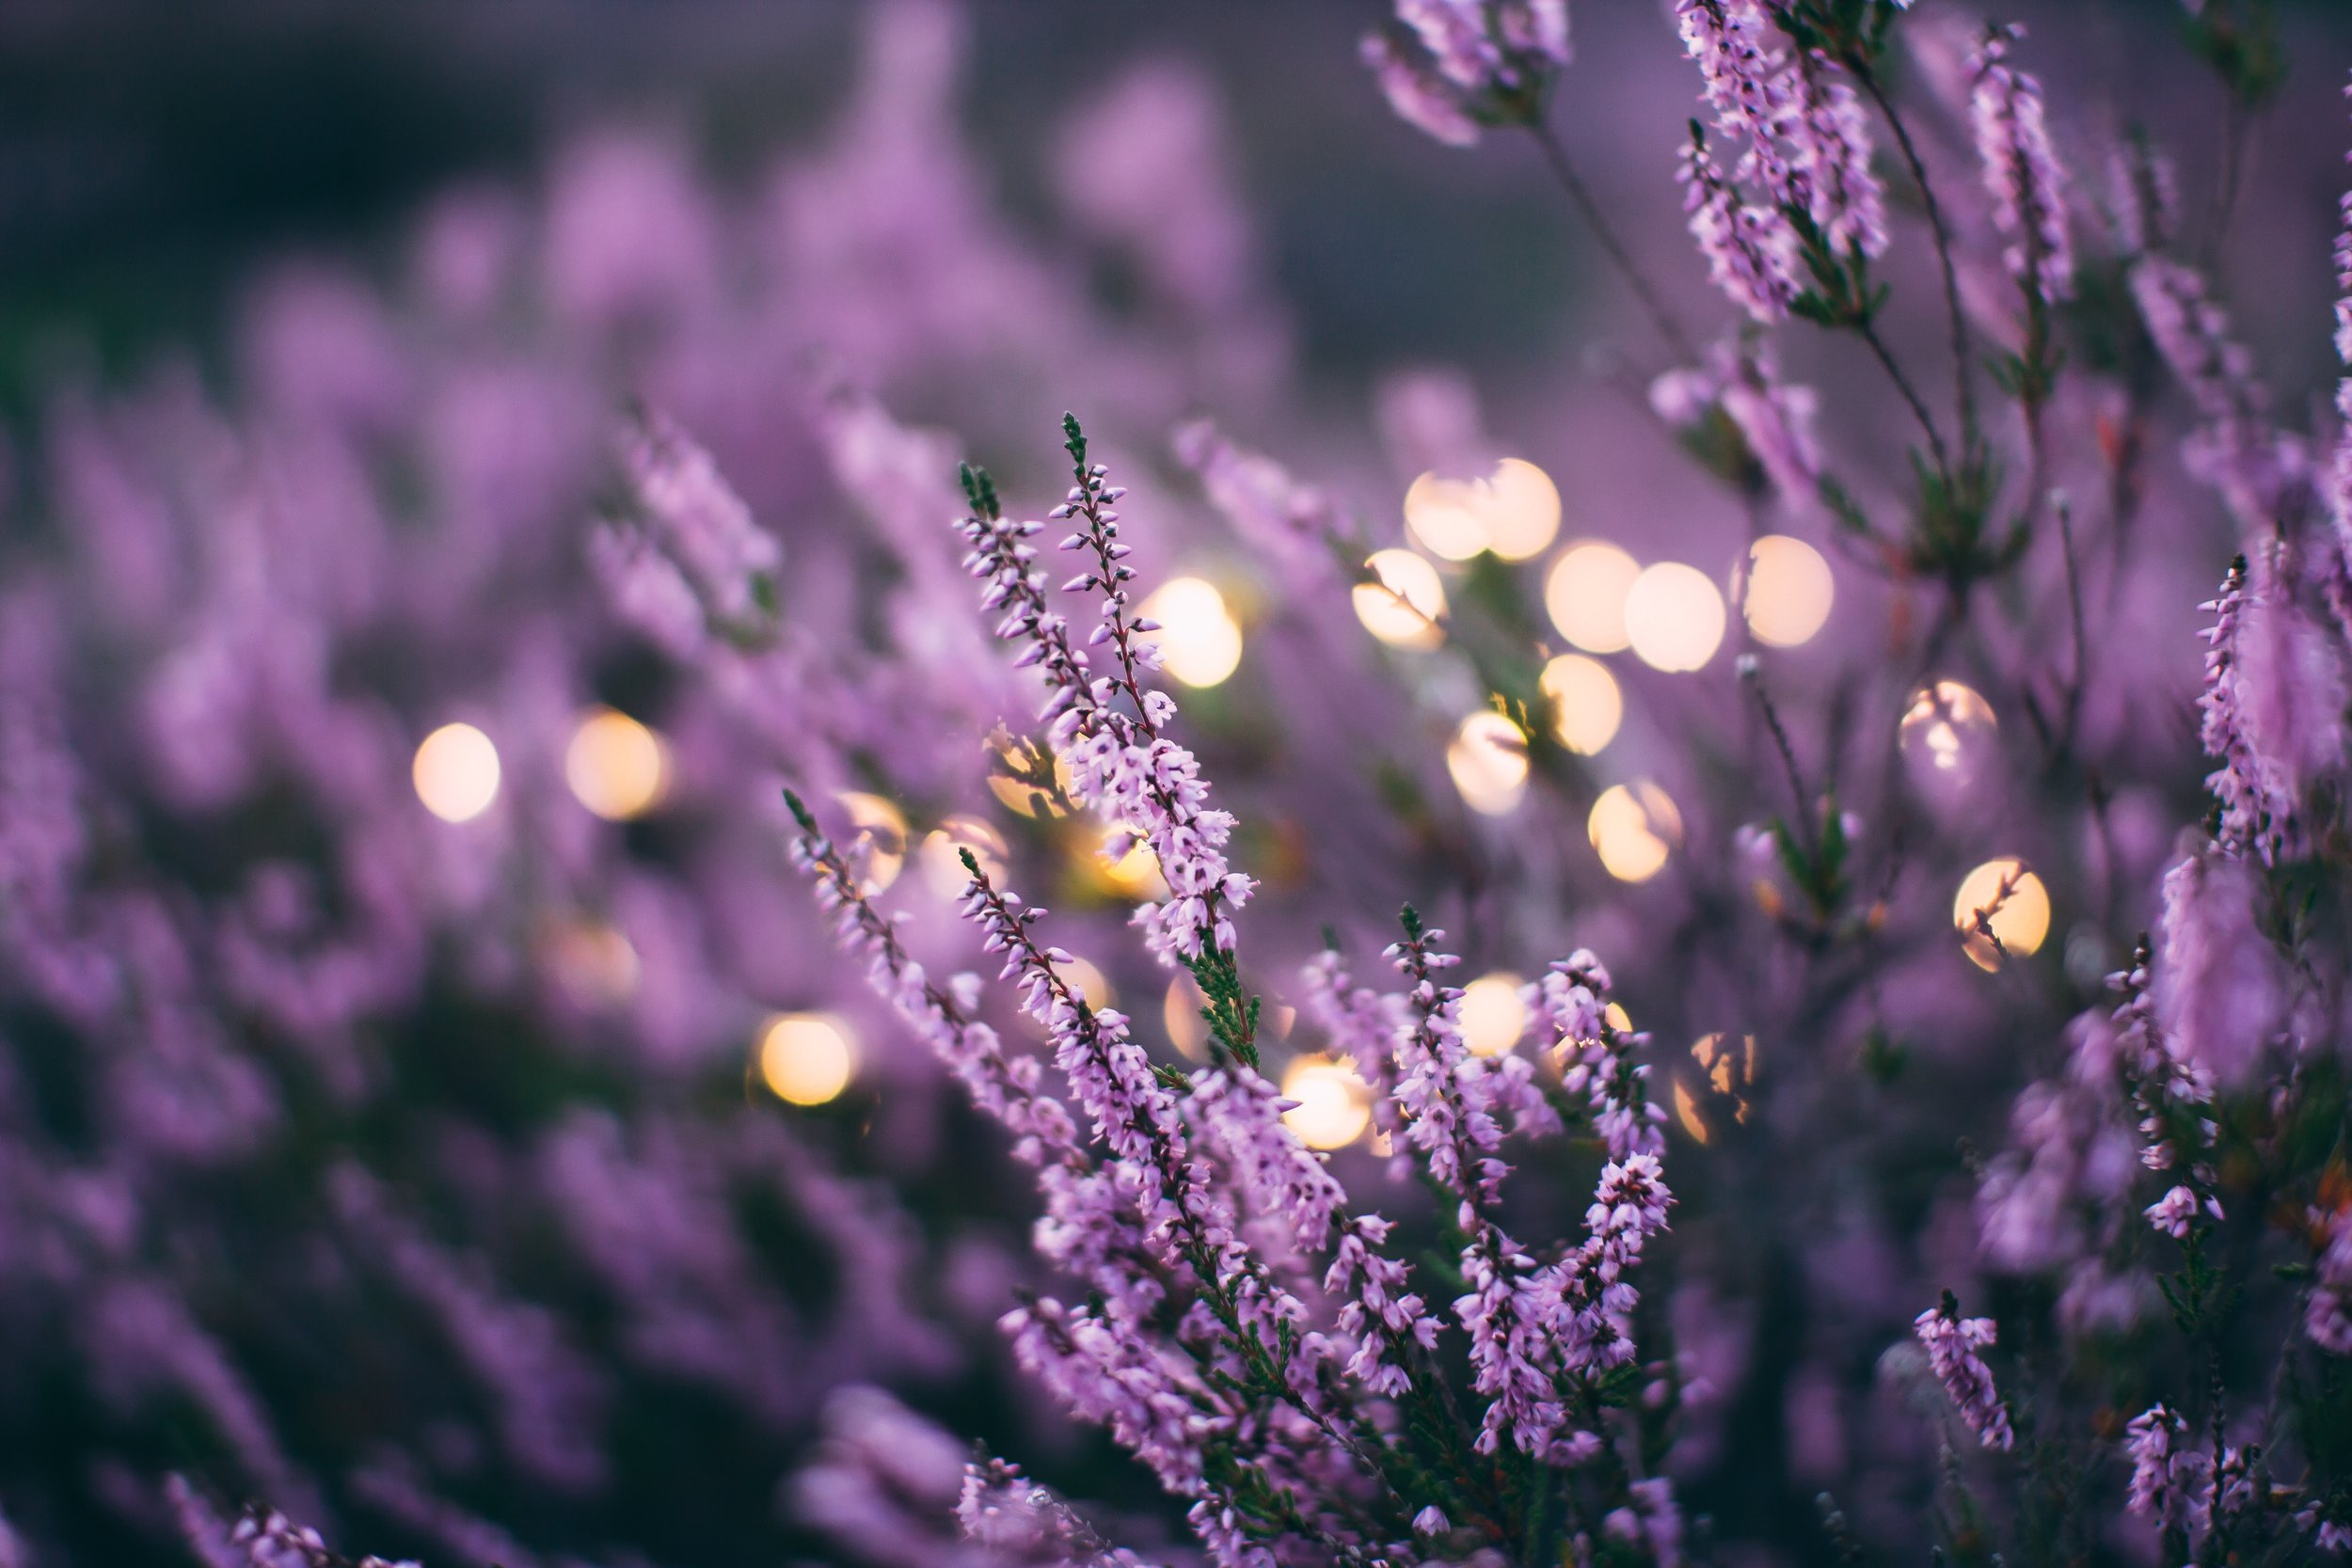 Wooster apothecary purple flowers in light herbal self care herbs pic from daiga-ellaby-ClWvcrkBhMY-unsplash.jpg